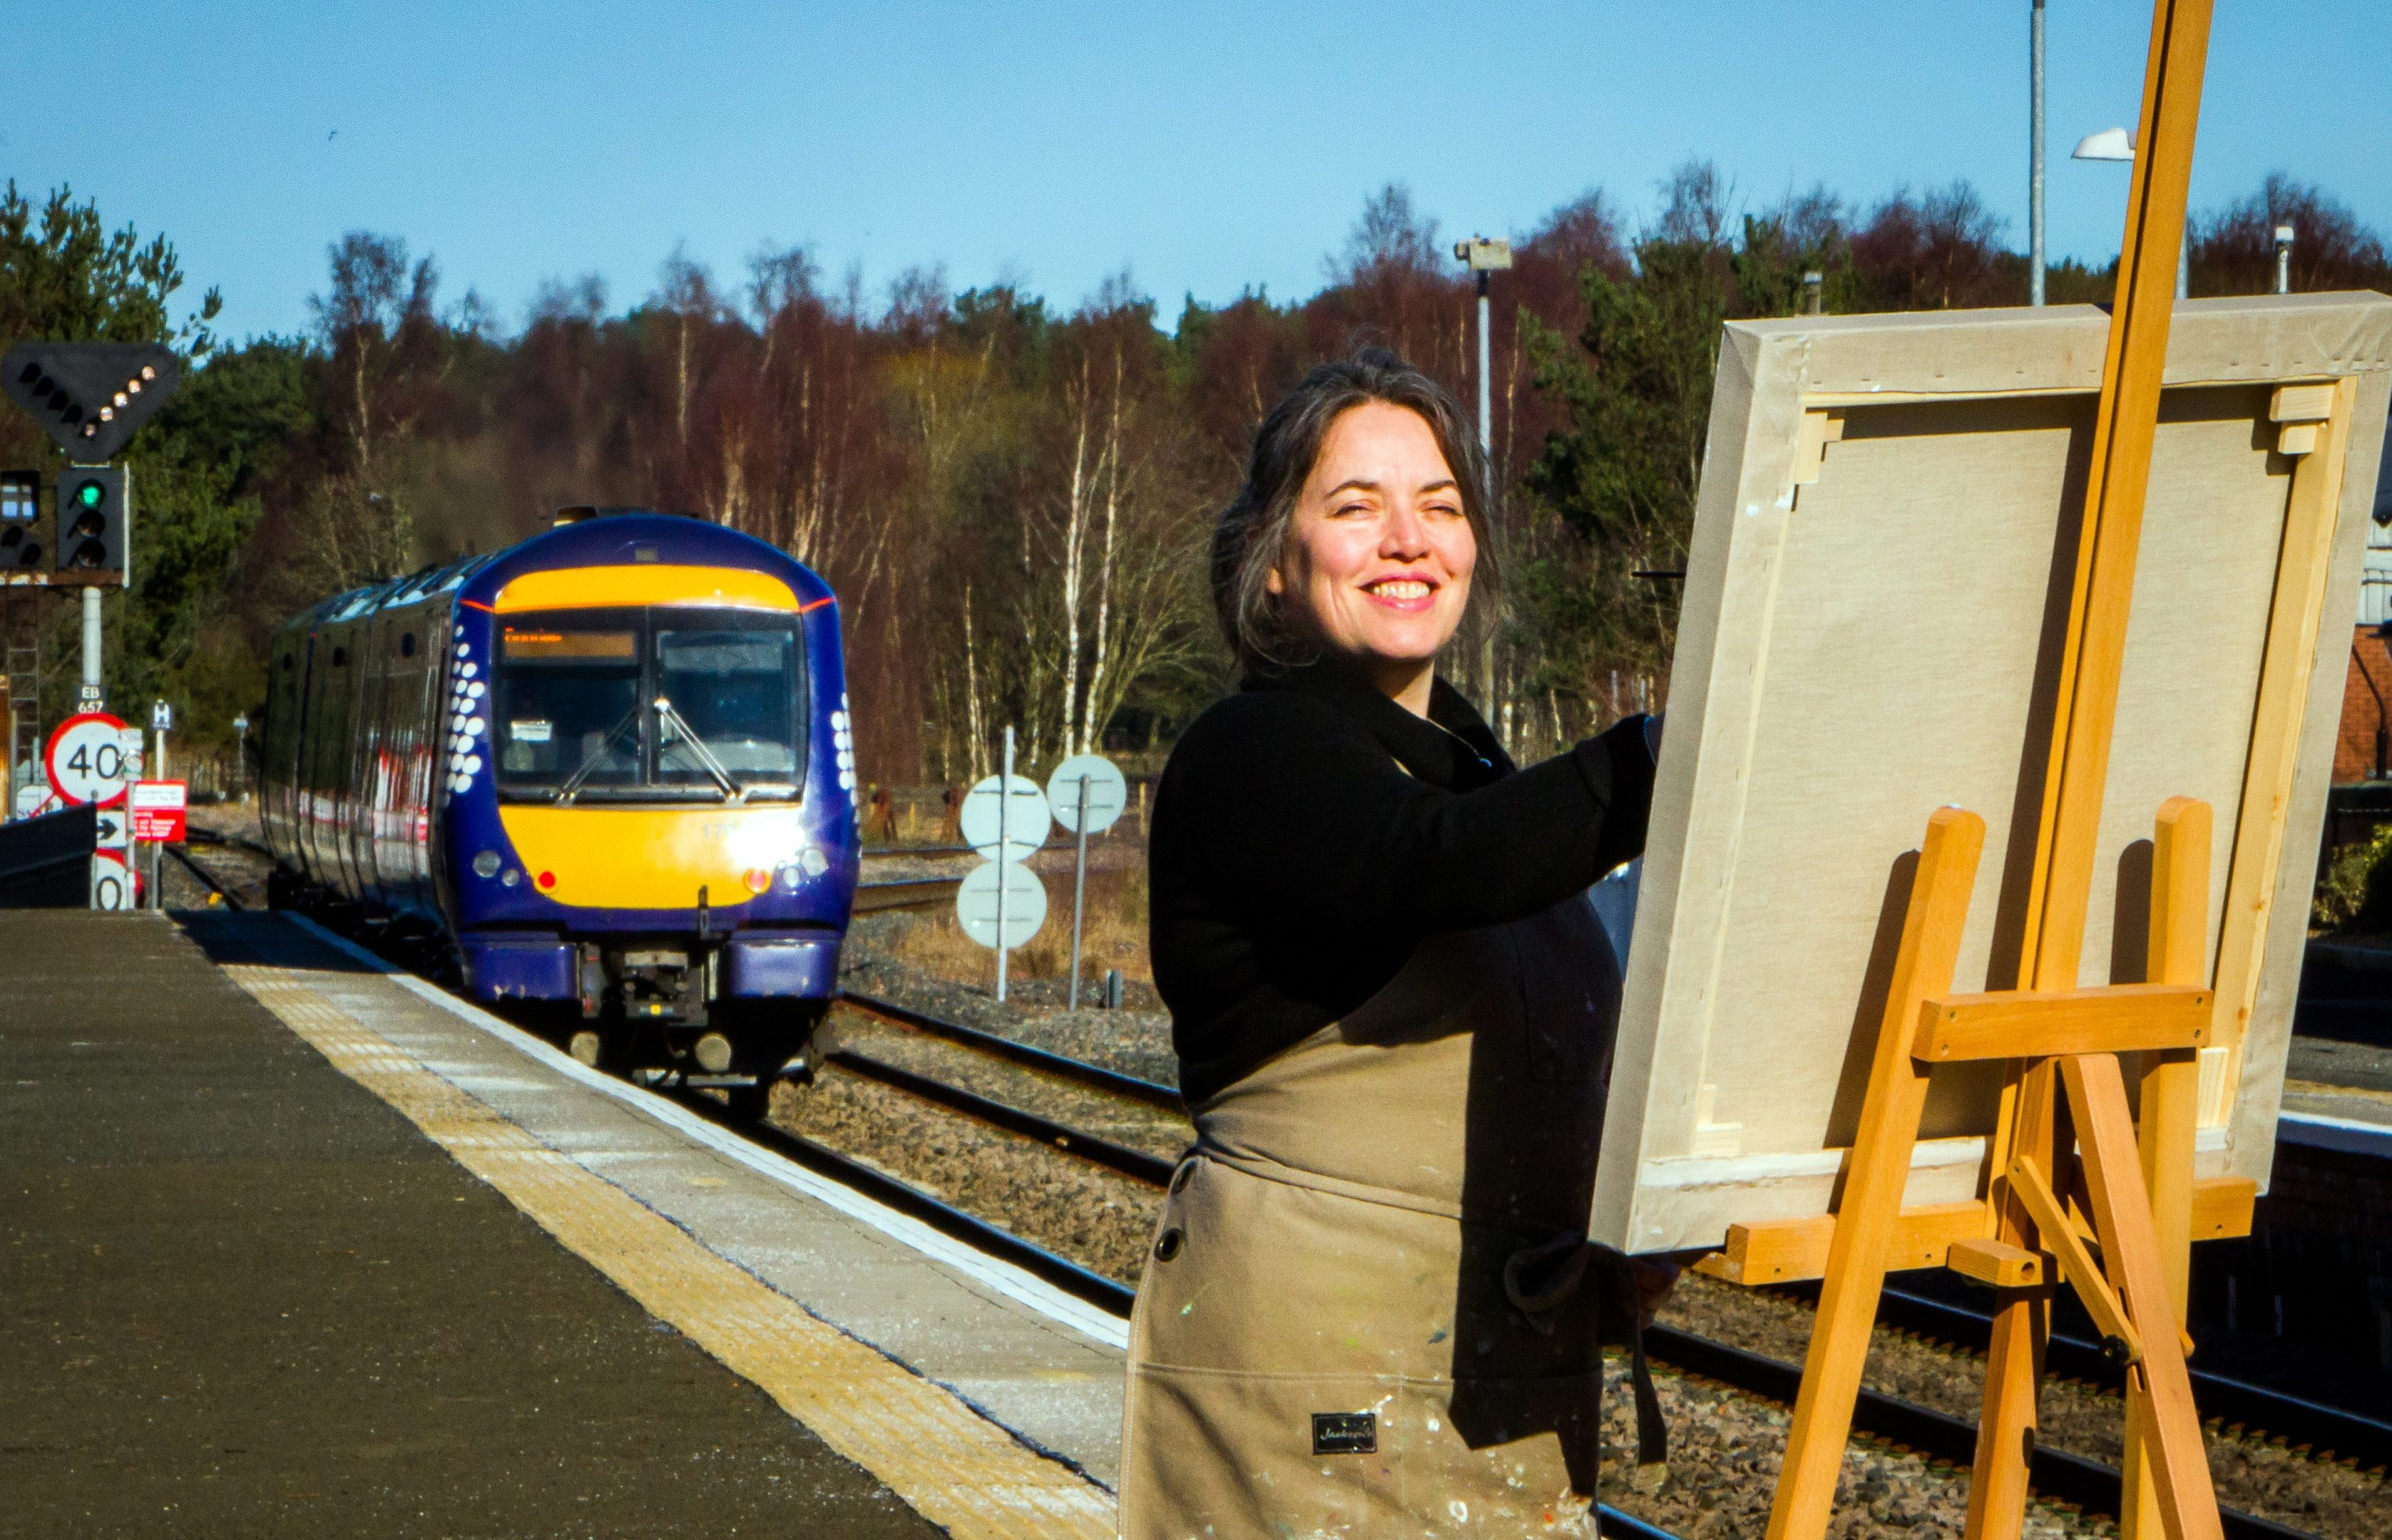 Kirsty Lorenz painting at Ladybank Station where she has a studio